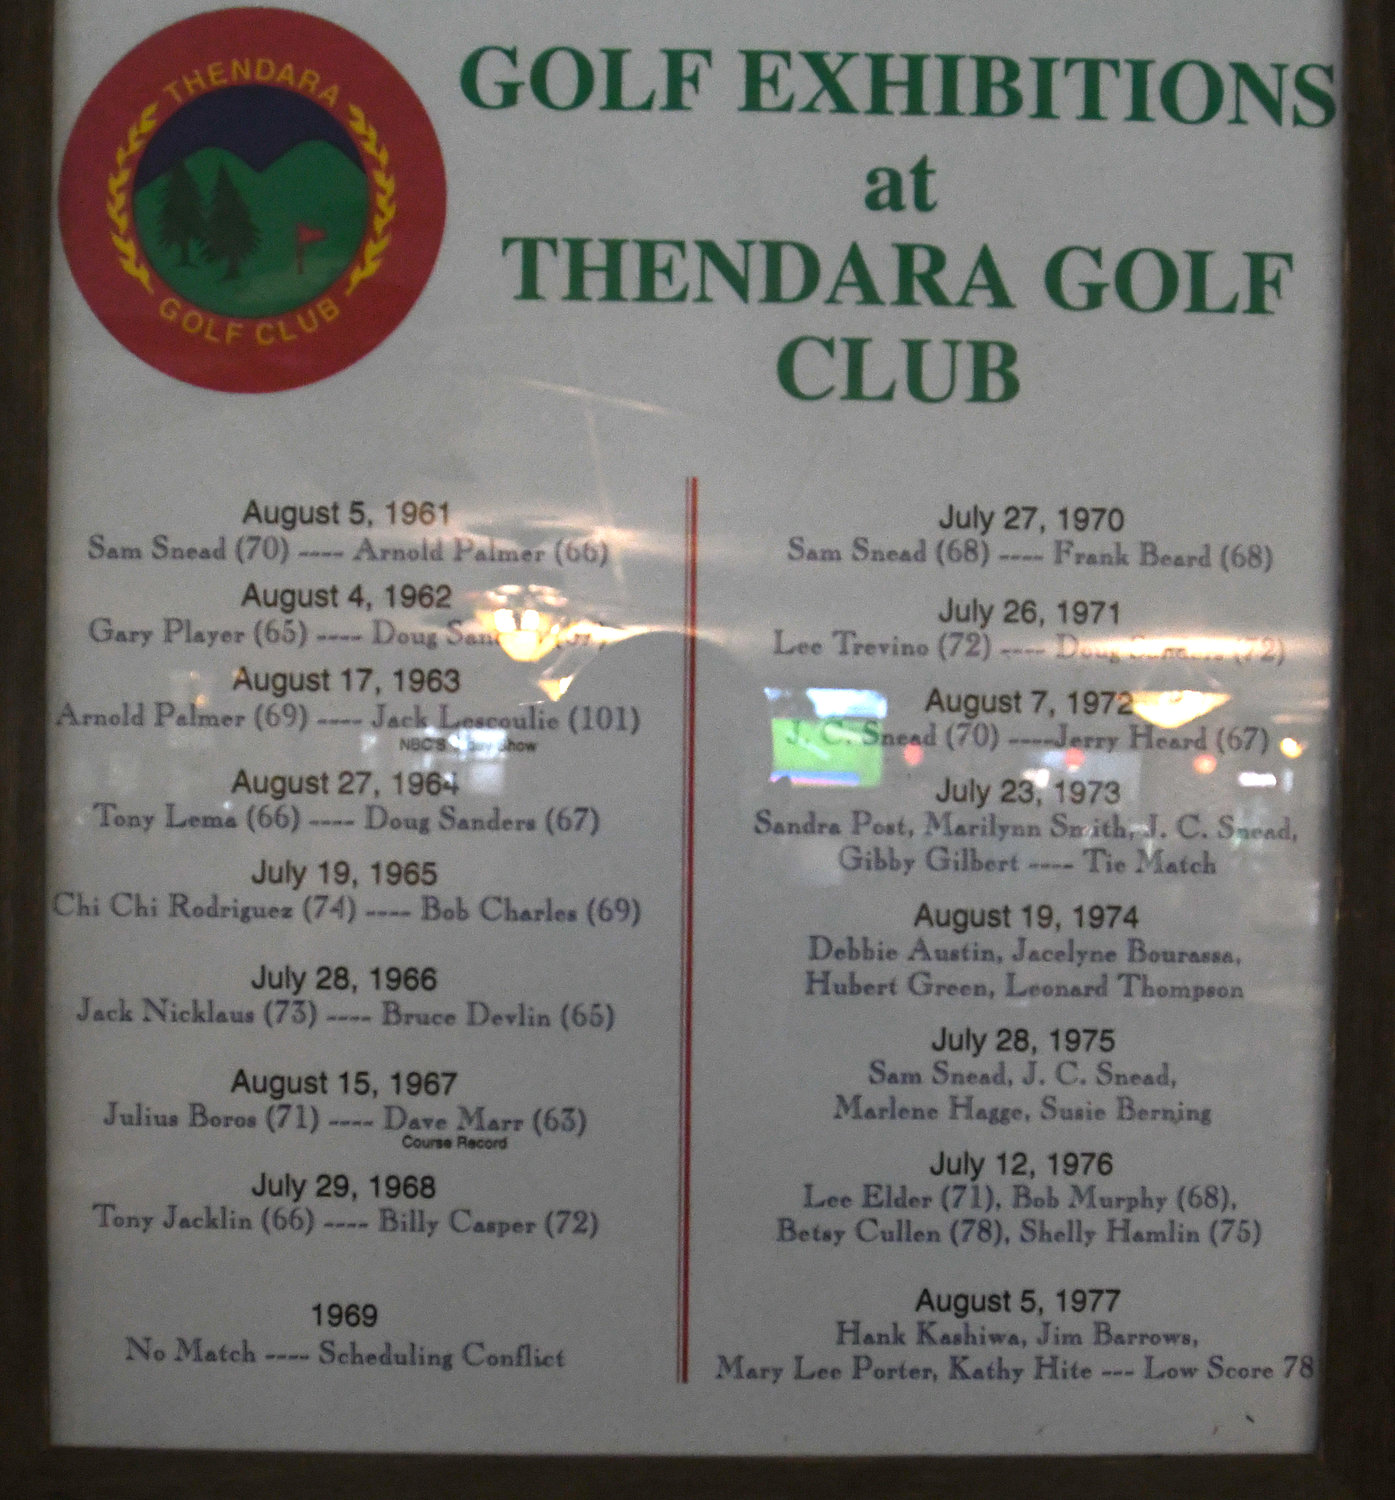 PROFESSIONAL LIST — This poster lists all of the PGA professionals that have played at Thendara. Dave Marr holds the course record at 63, which he shot on August 15, 1967.